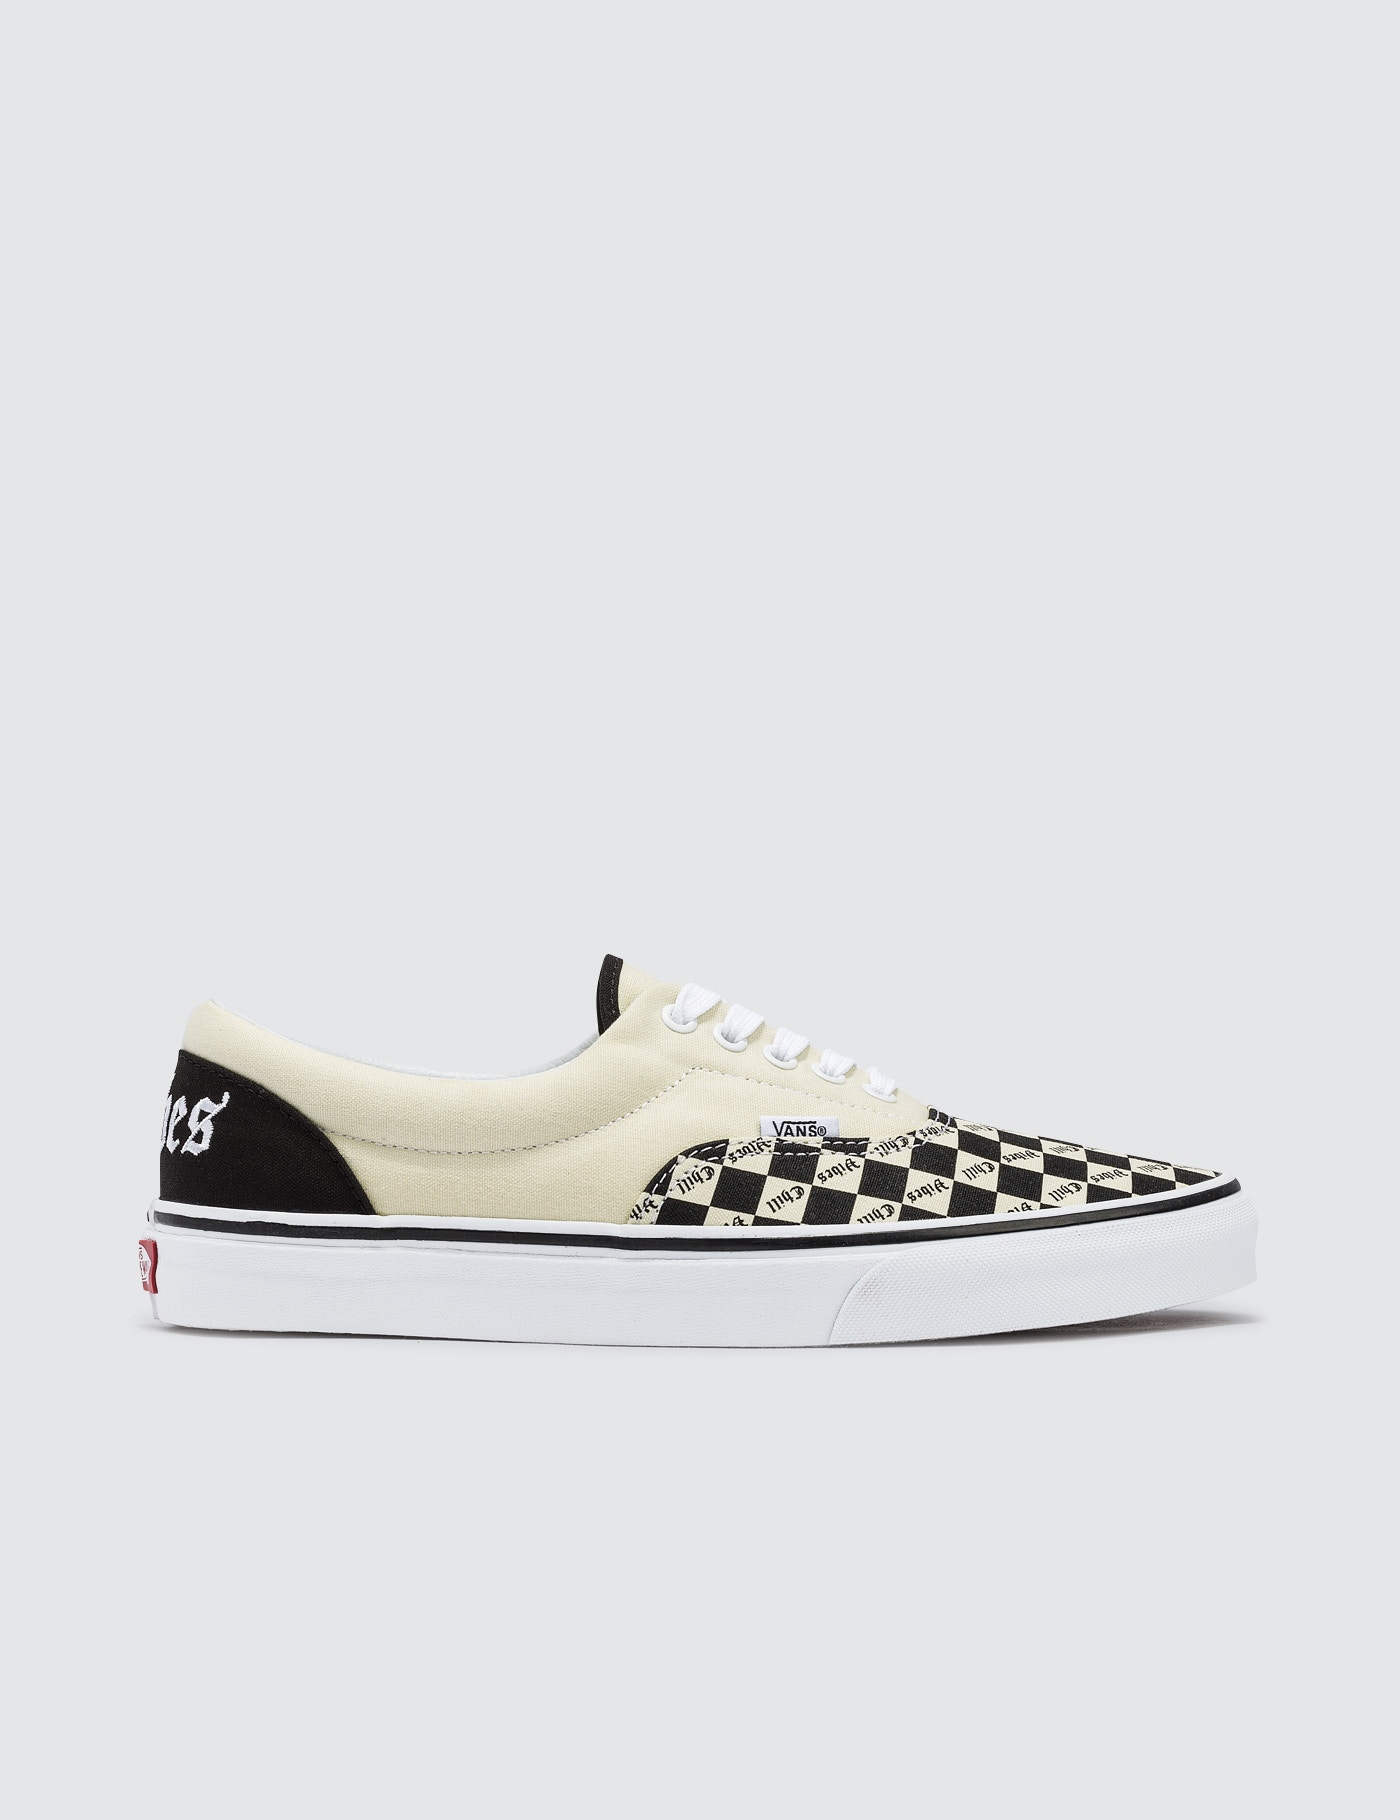 Buy Original Vans Era Chill Vibes at Indonesia  ef9a449ce